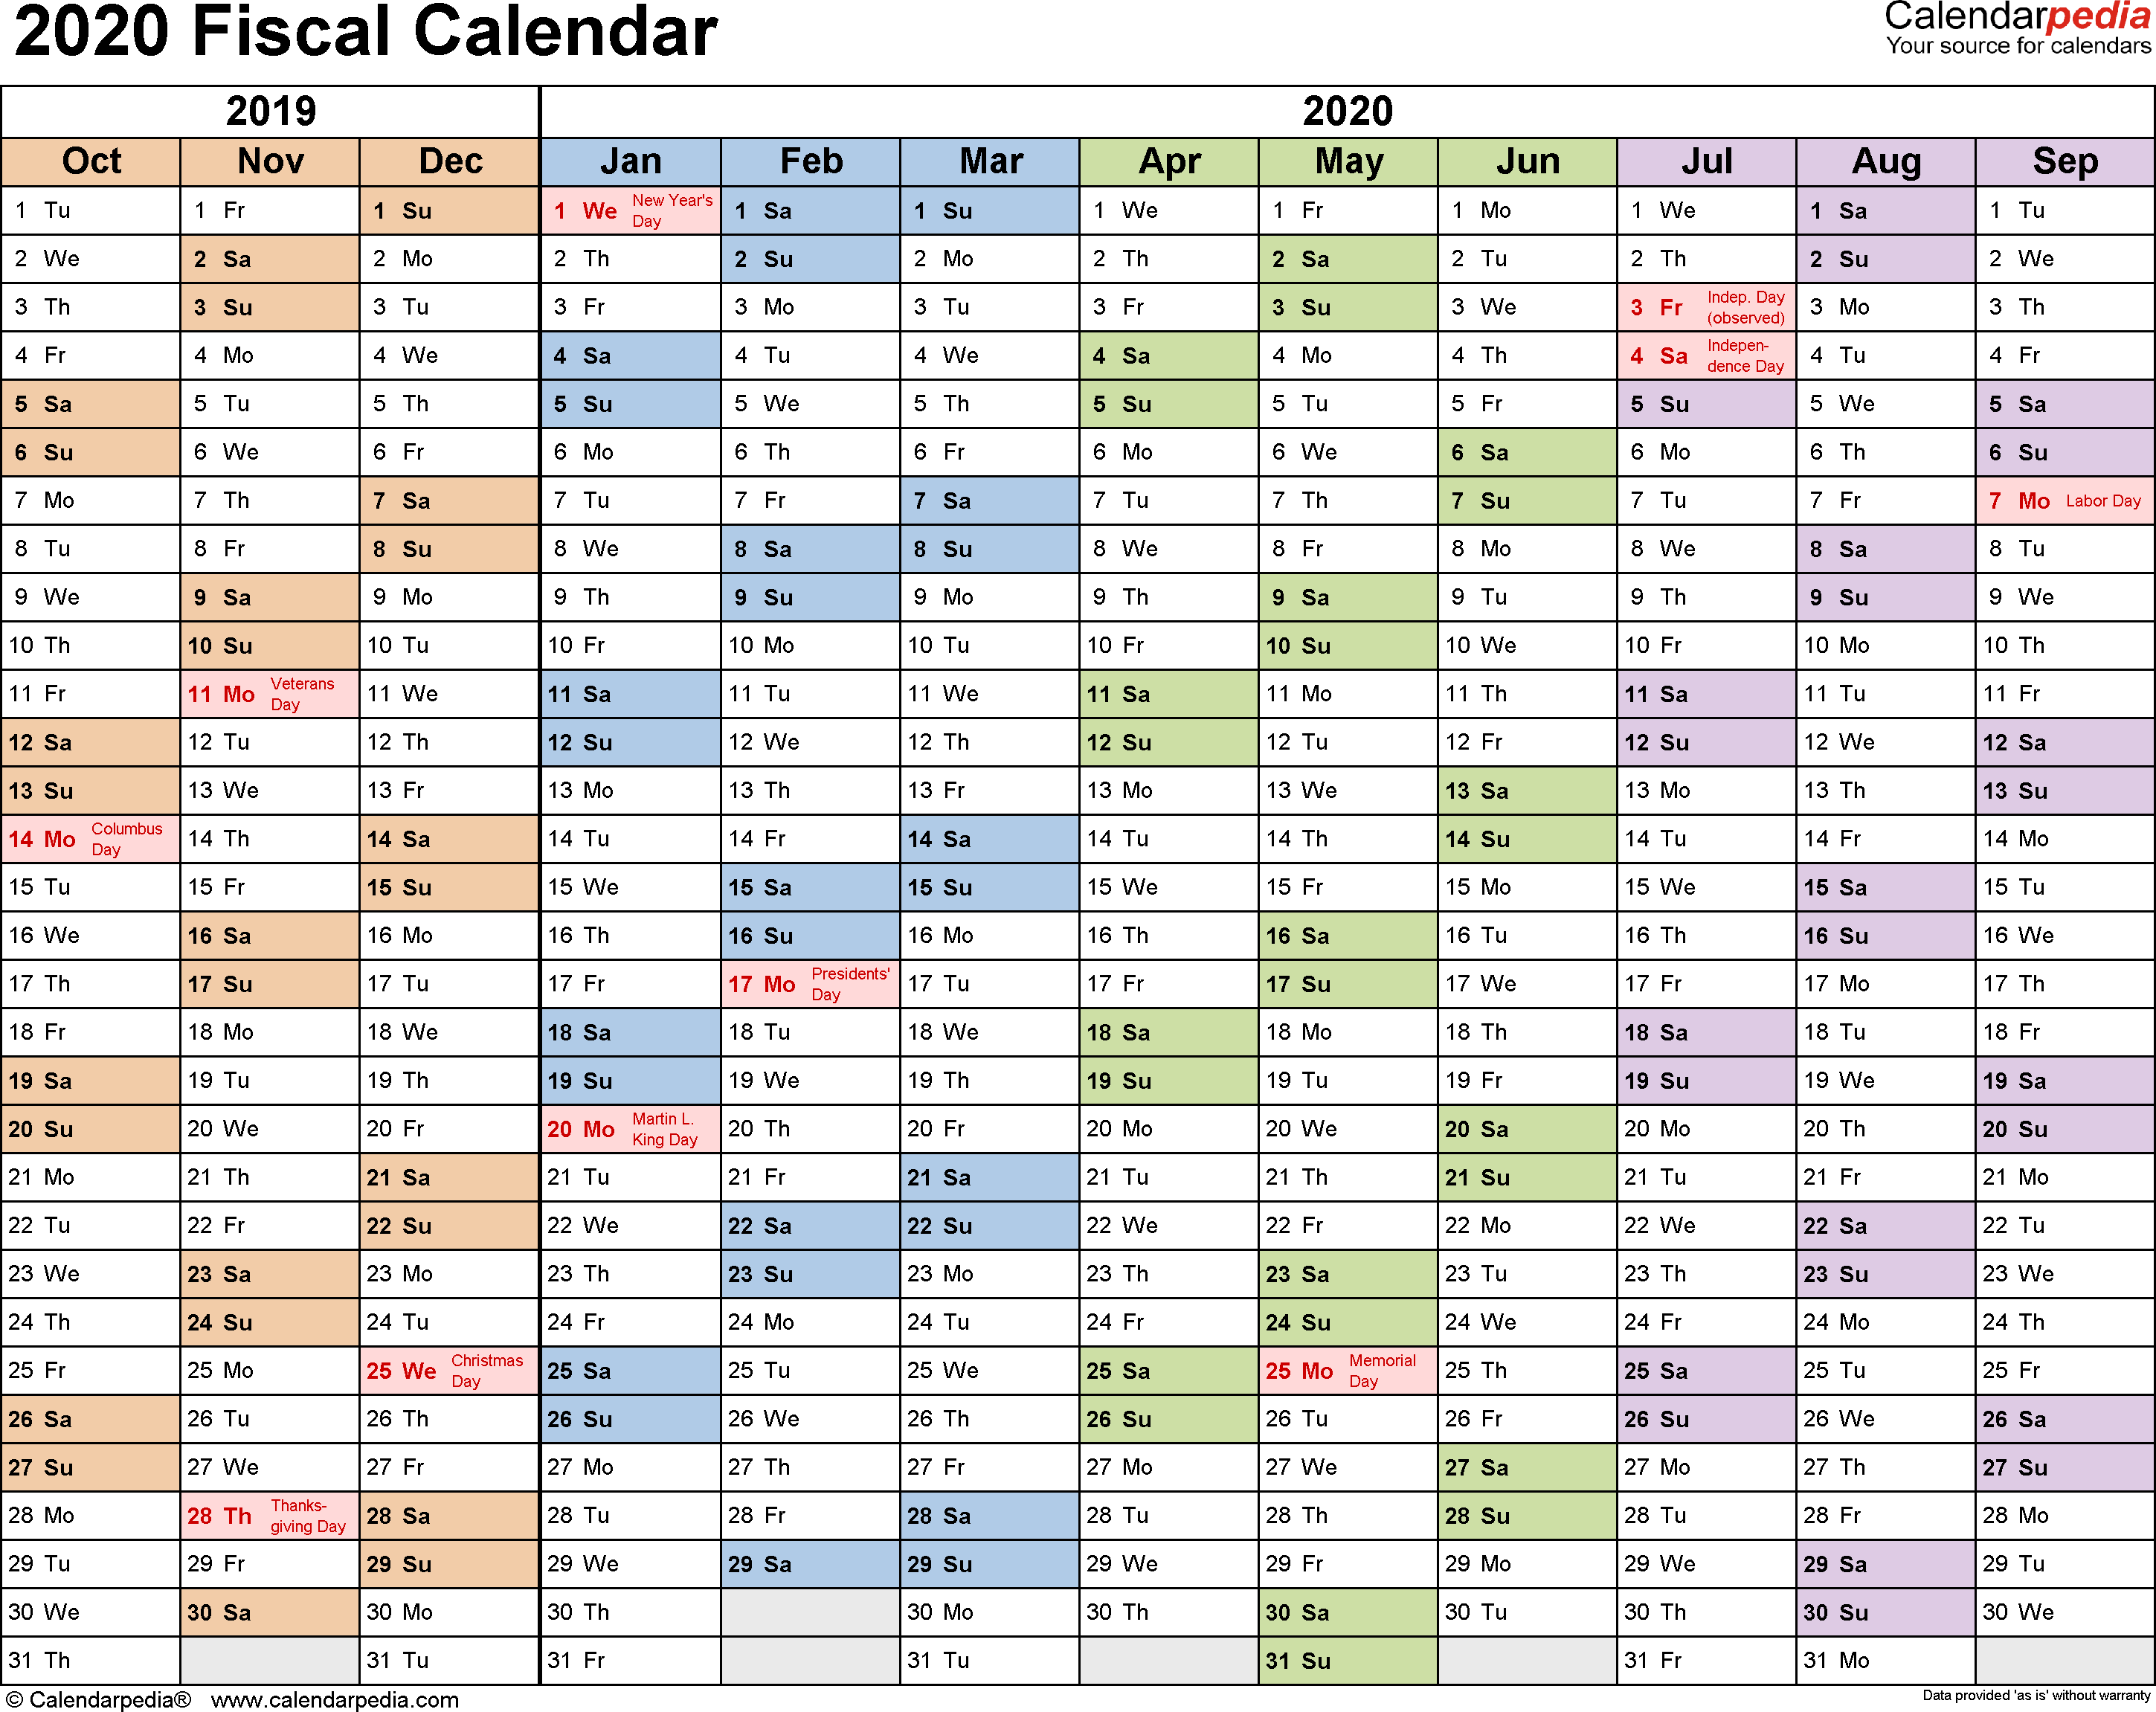 Fiscal Calendars 2020 - Free Printable Pdf Templates with regard to Payroll Calendar 2020 Every Two Weeks